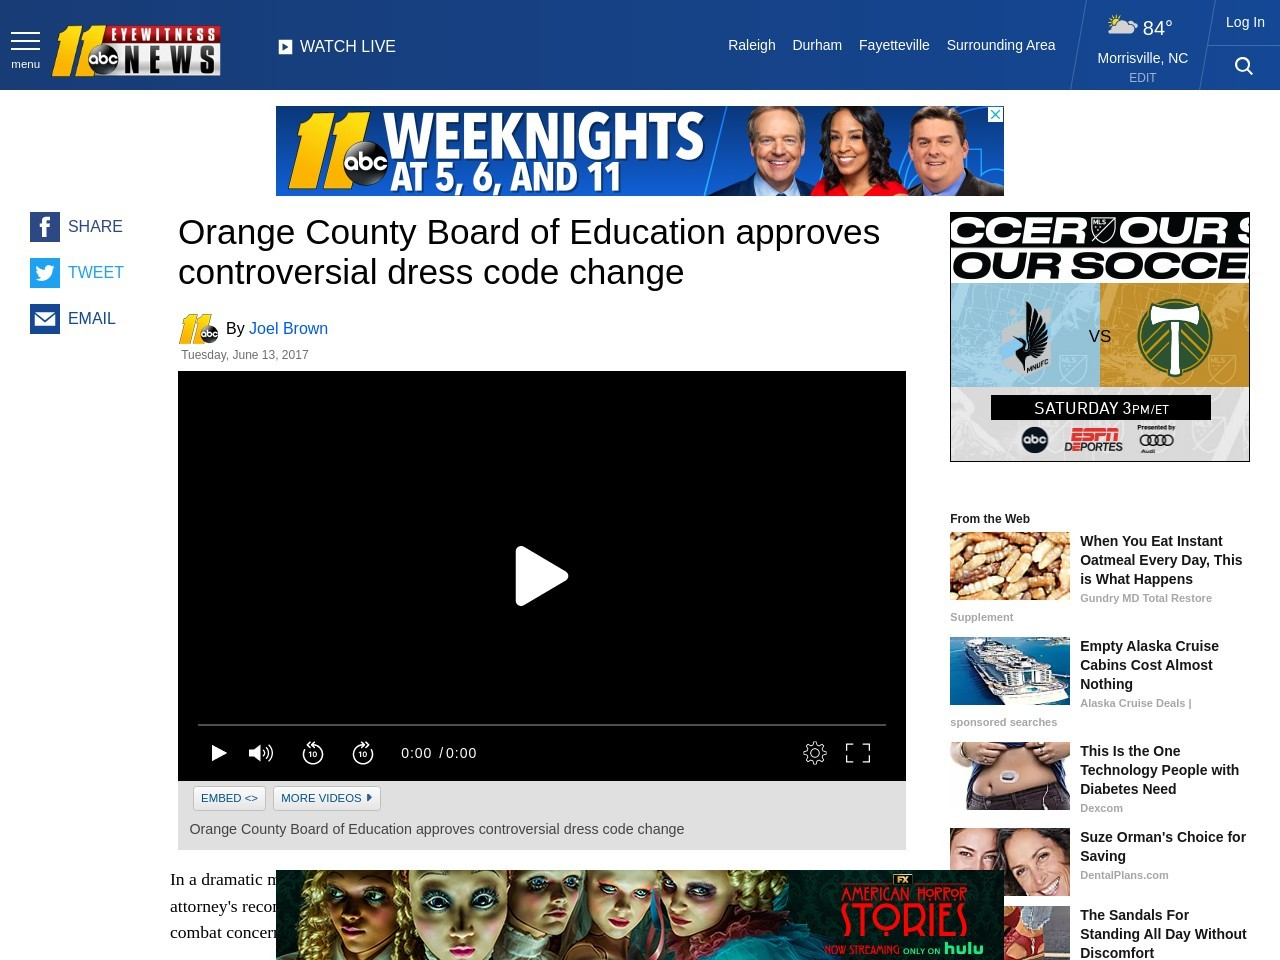 Orange County Board of Education approves controversial dress code change